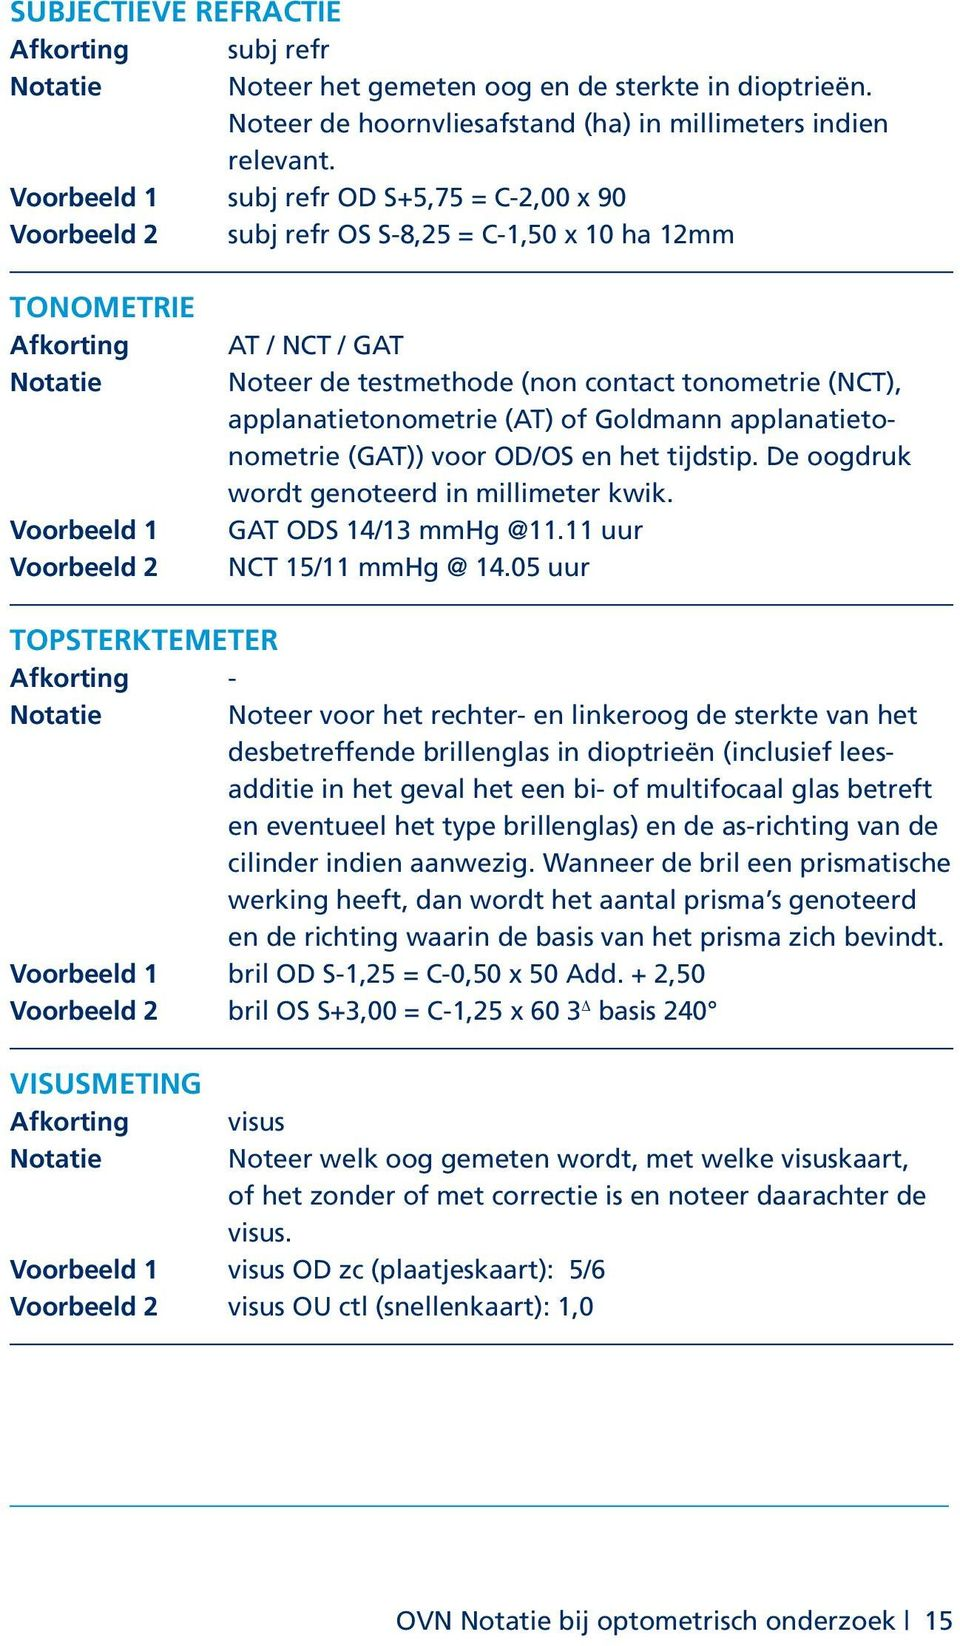 contact tonometrie (NCT), applanatietonometrie (AT) of Goldmann applanatietonometrie (GAT)) voor OD/OS en het tijdstip. De oogdruk wordt genoteerd in millimeter kwik. GAT ODS 14/13 mmhg @11.